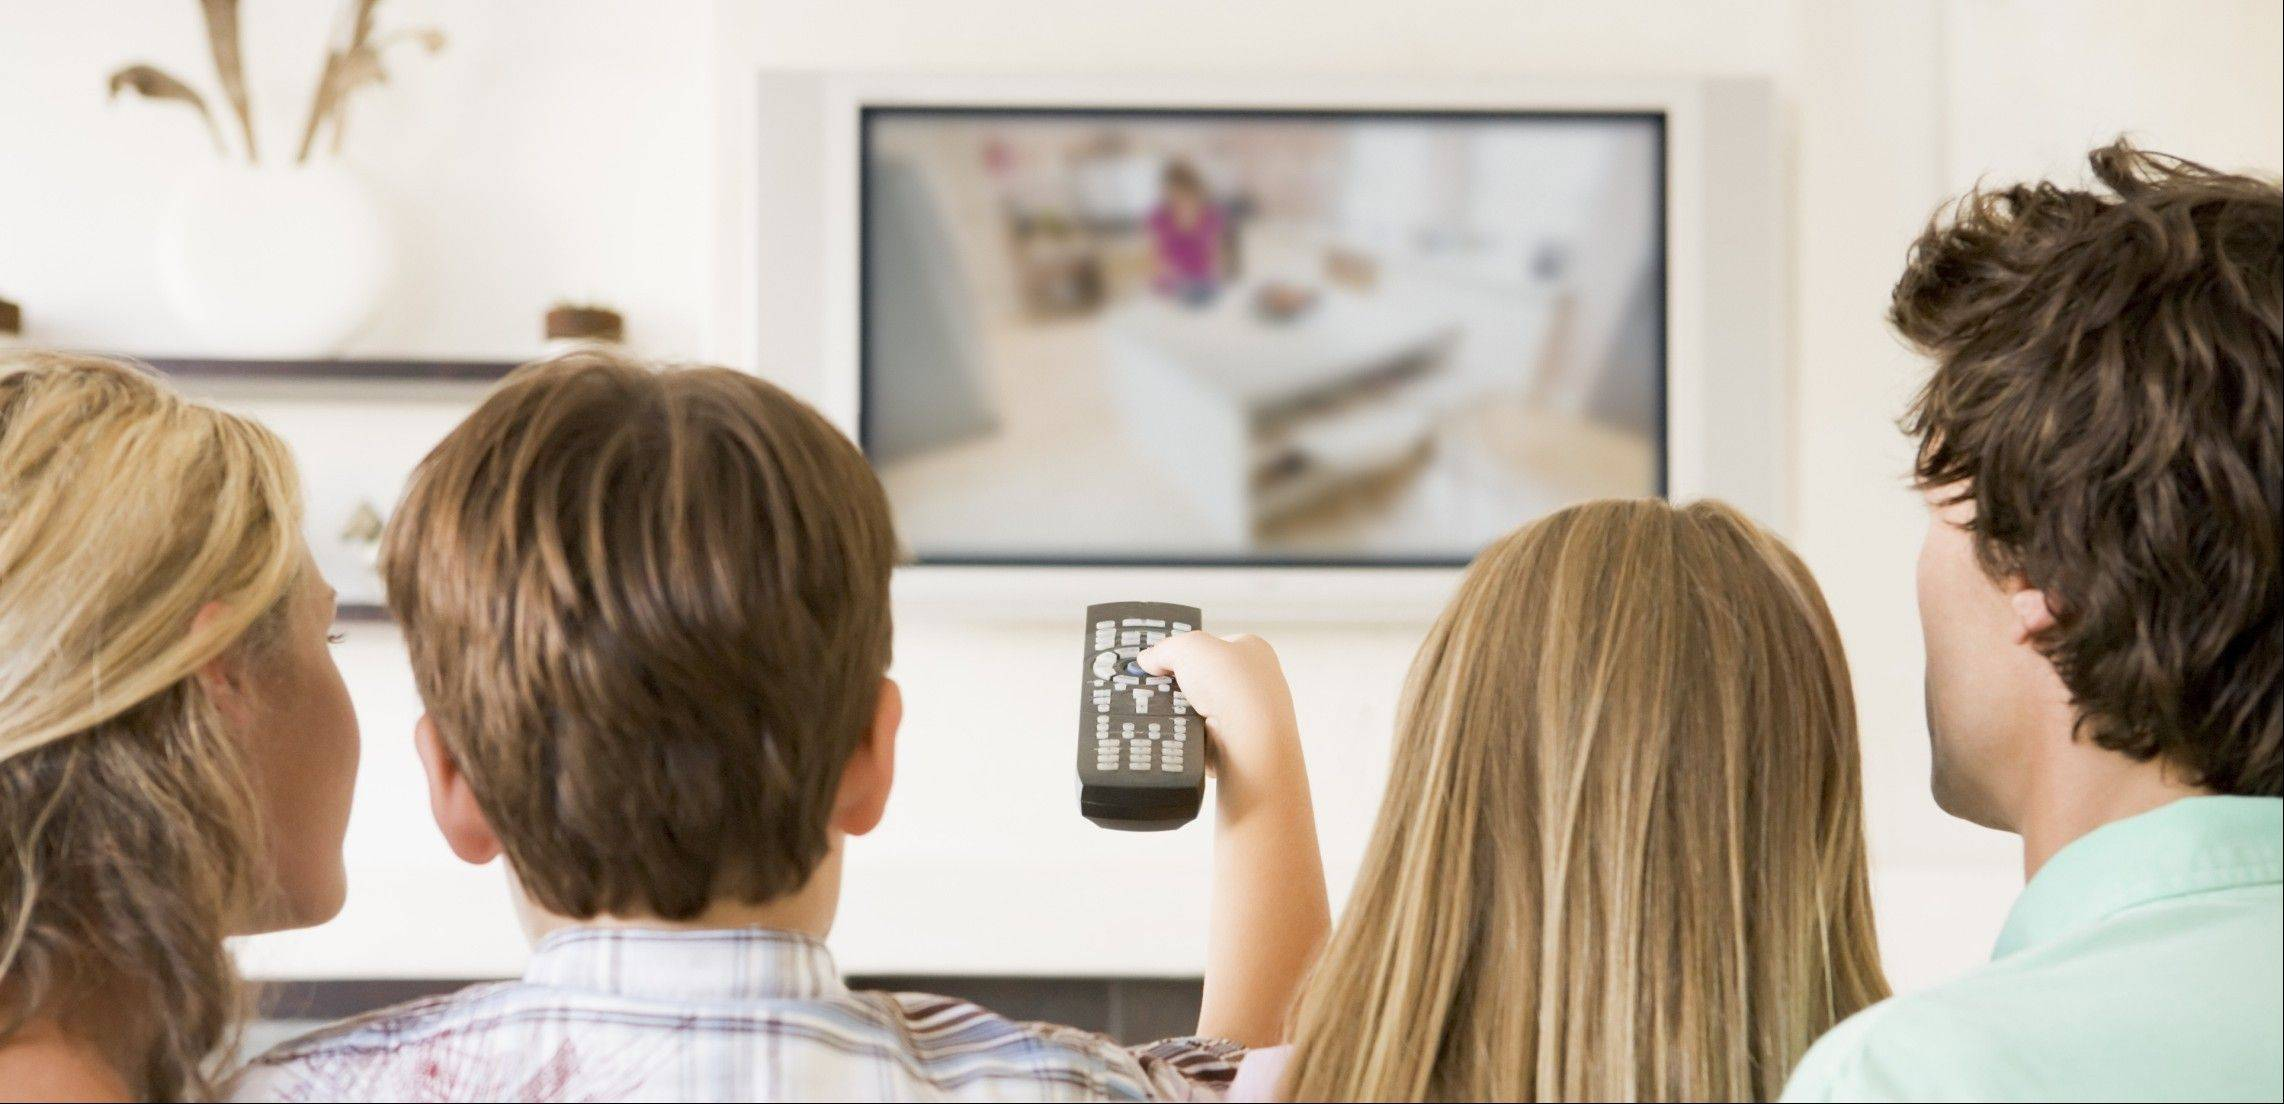 In June, The Nielsen Co. said it found that Americans who watch the most video online tend to watch less TV. The activity was more pronounced among people ages 18-34, a slice of the population advertisers are particularly eager to target.